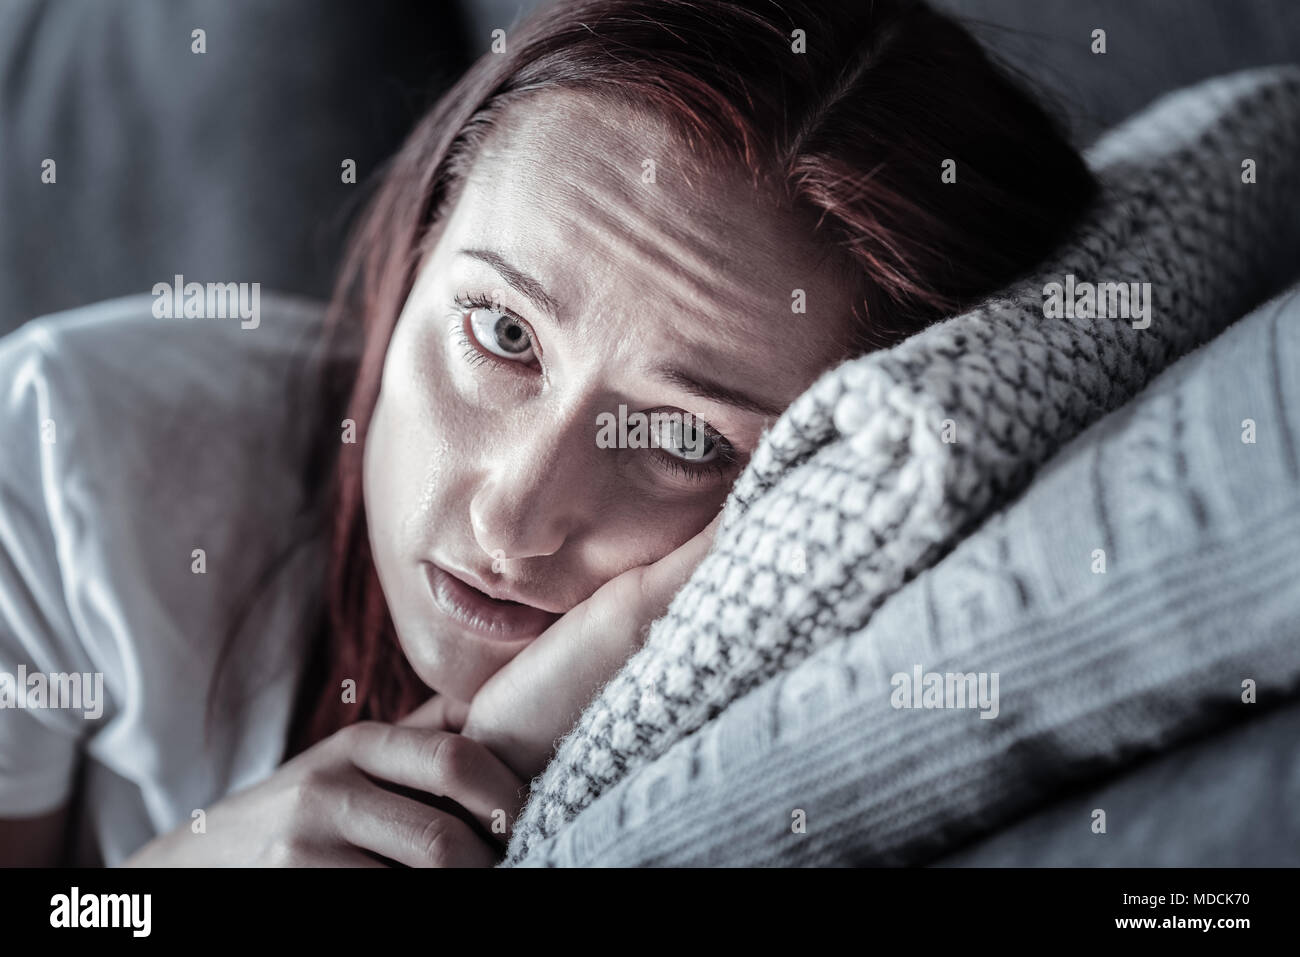 Depressed unhappy woman weeping on pillow - Stock Image